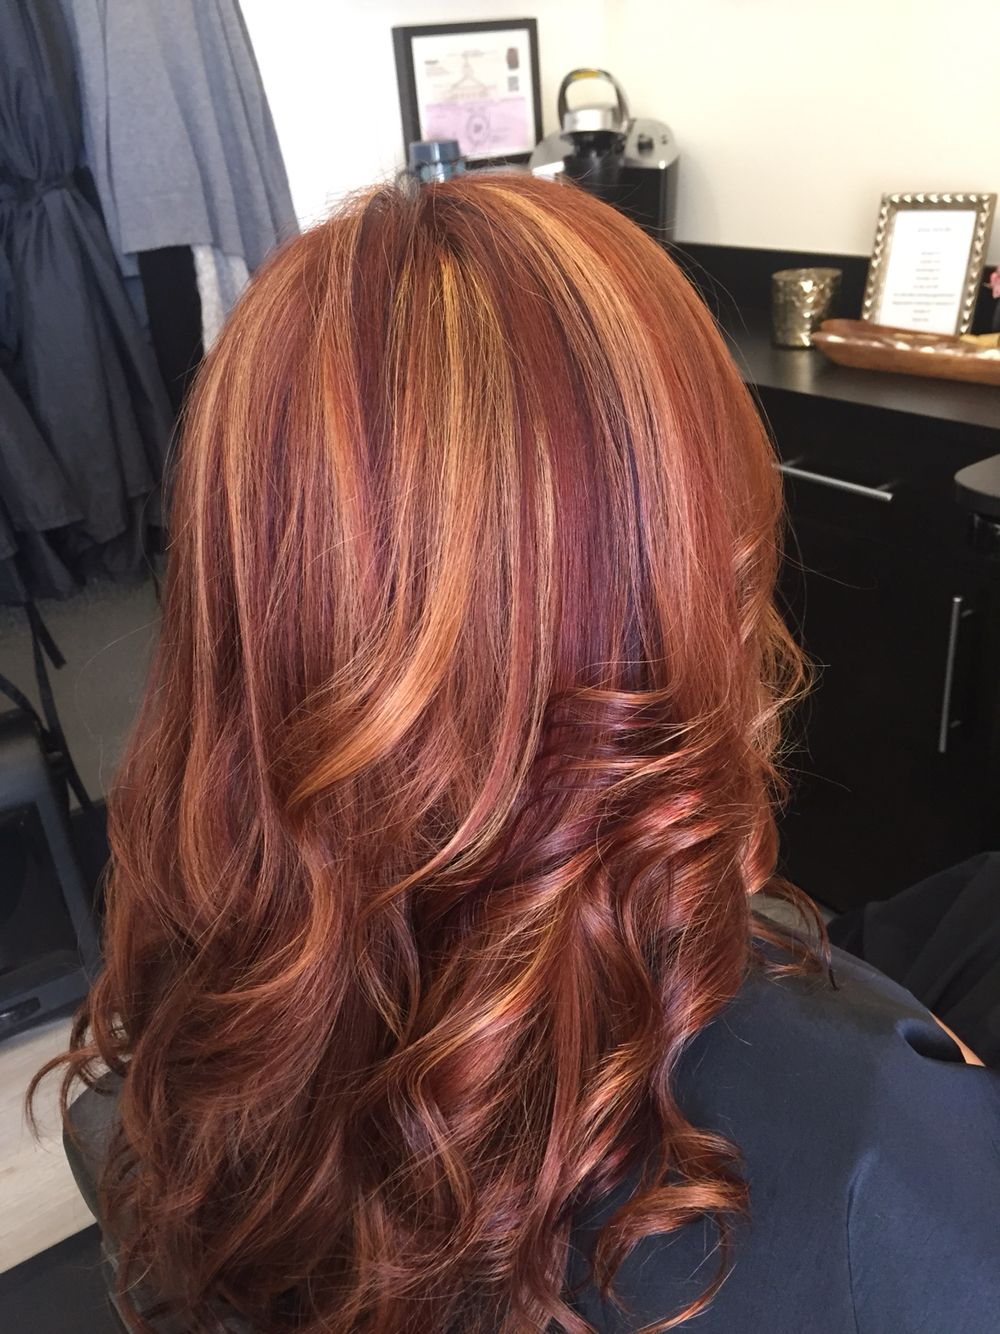 Red Hair With Blonde Highlights And Violet Low Lights Beautifulredhair Hair Color Auburn Red Hair With Blonde Highlights Red Hair With Highlights